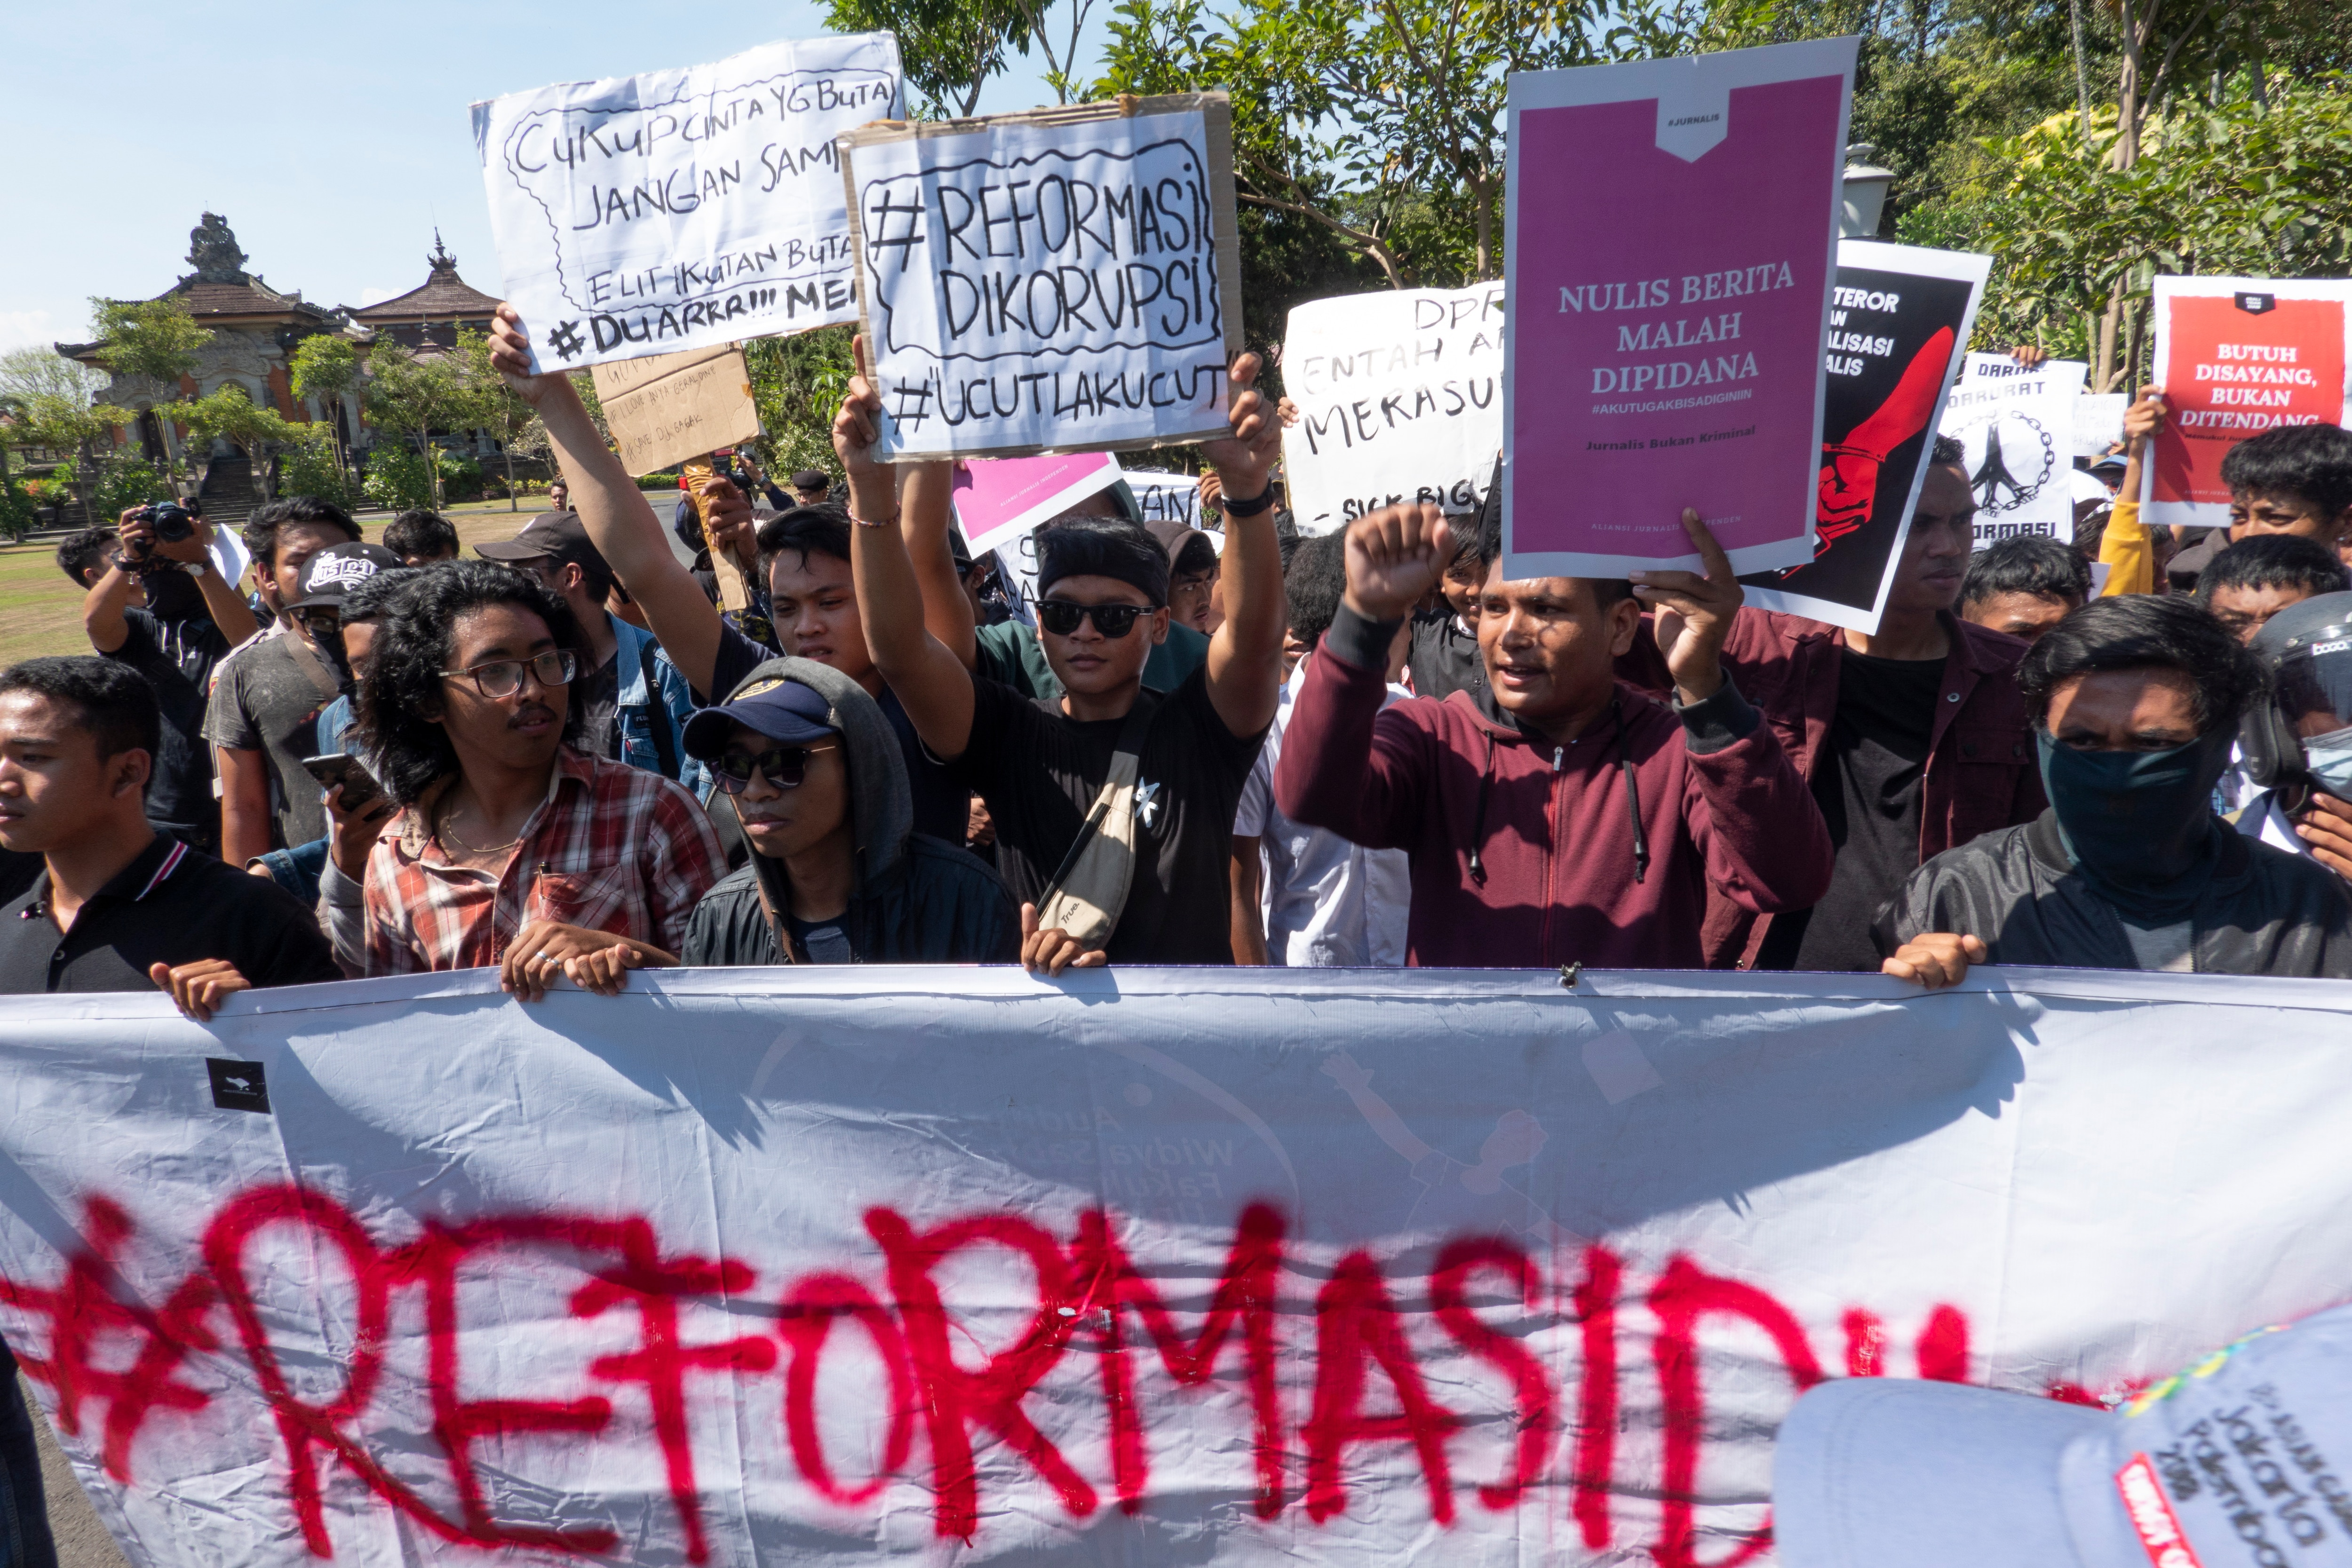 Hundreds arrested after fresh Indonesia legal-reforms protests